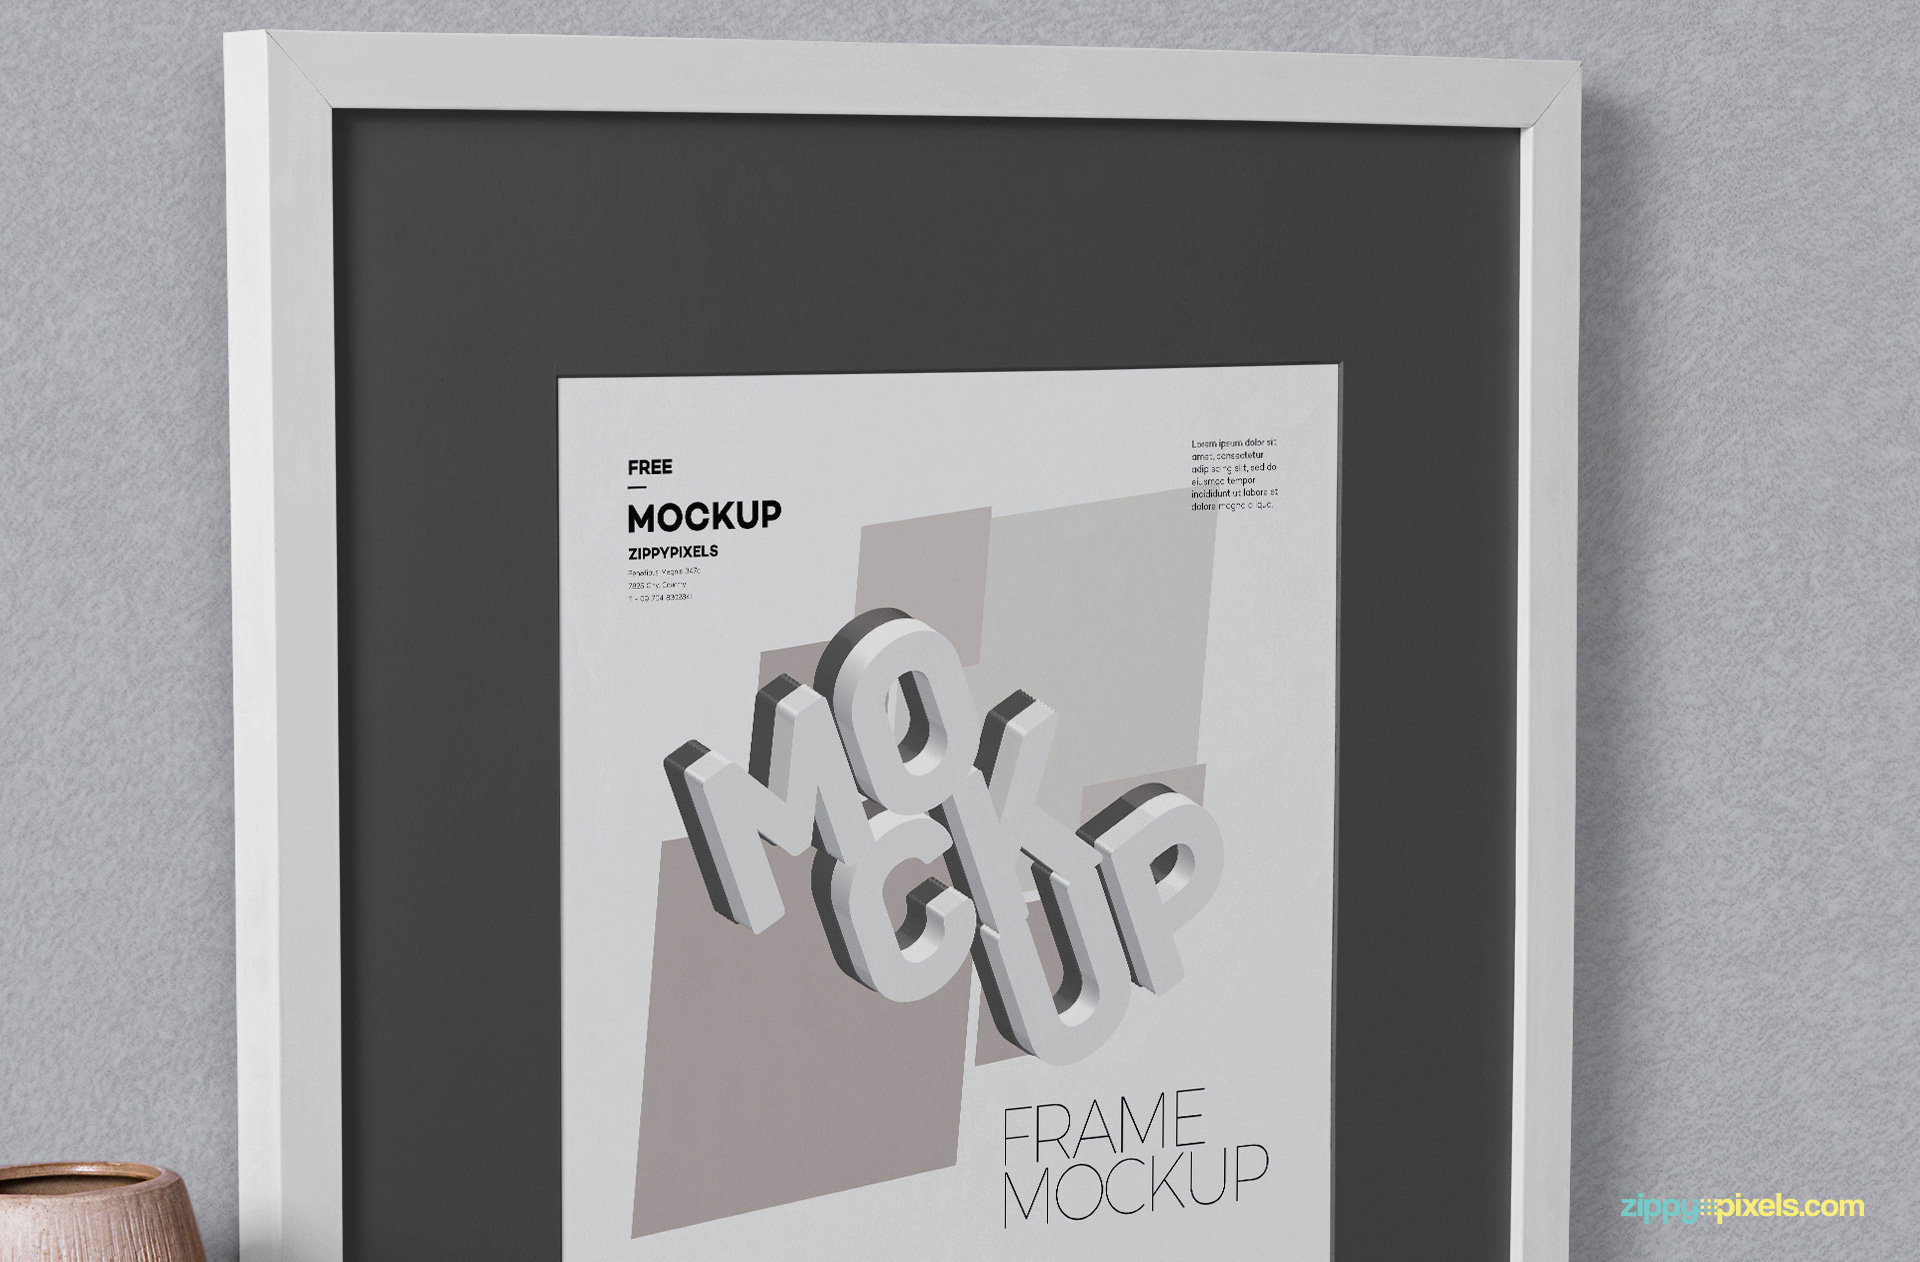 Zoom in view of poster frame mockup.